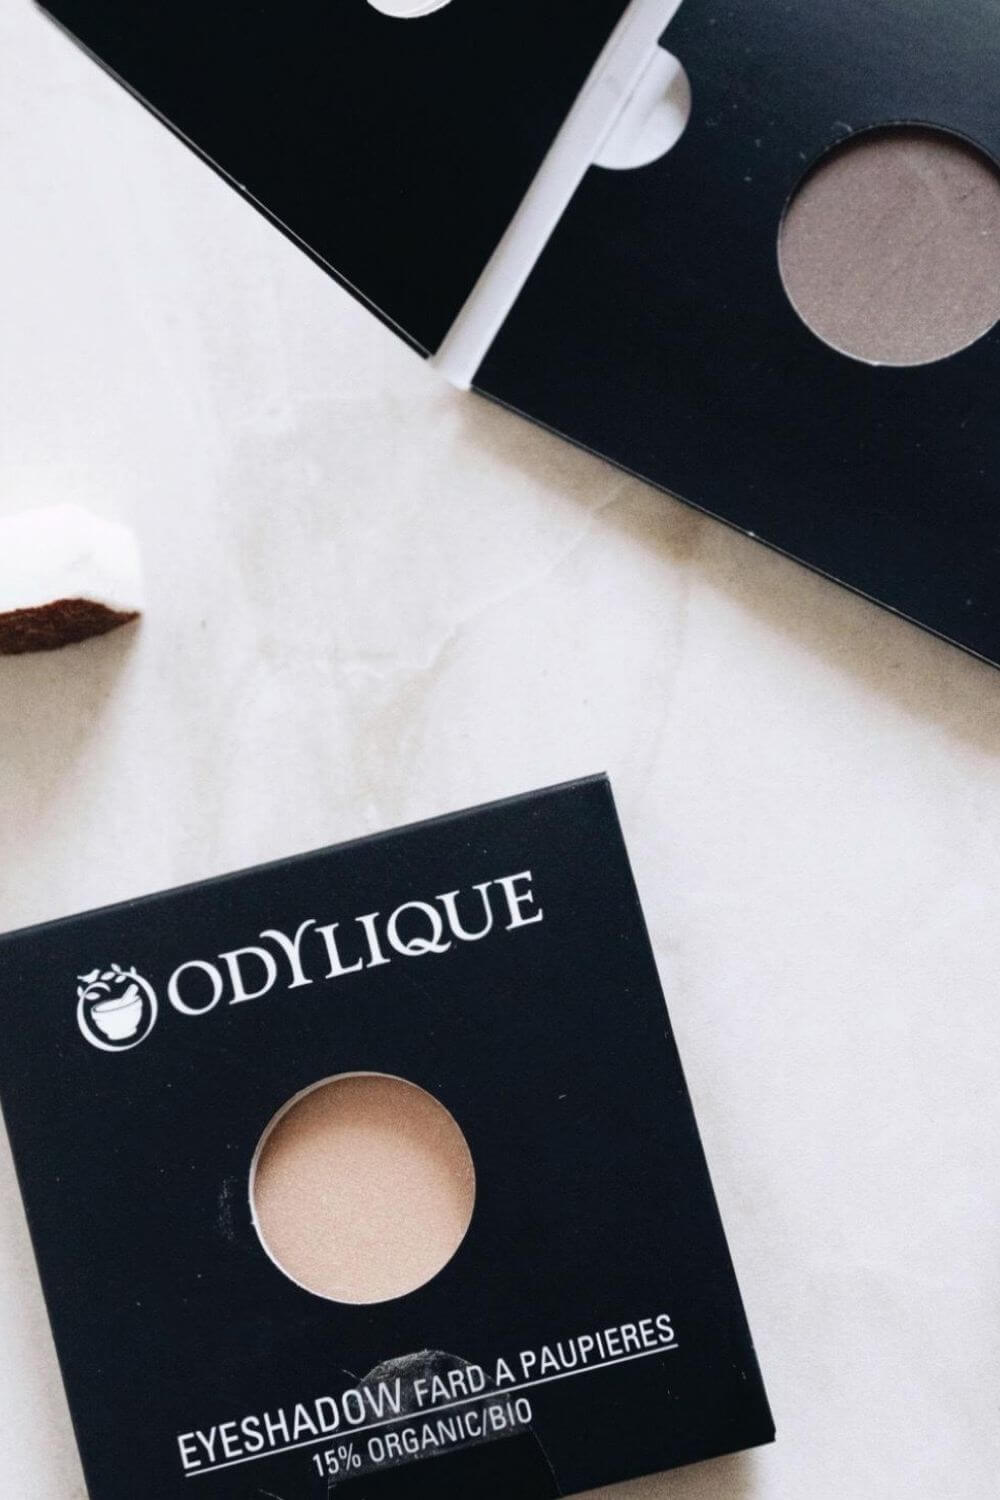 On the look out for sustainable and eco friendly makeup? Thankfully, there are quite a few ethical makeup brands out there to choose from. And many are available and based in the UK and US! Image by Odylique #ecofriendlymakeup #sustainablejungle